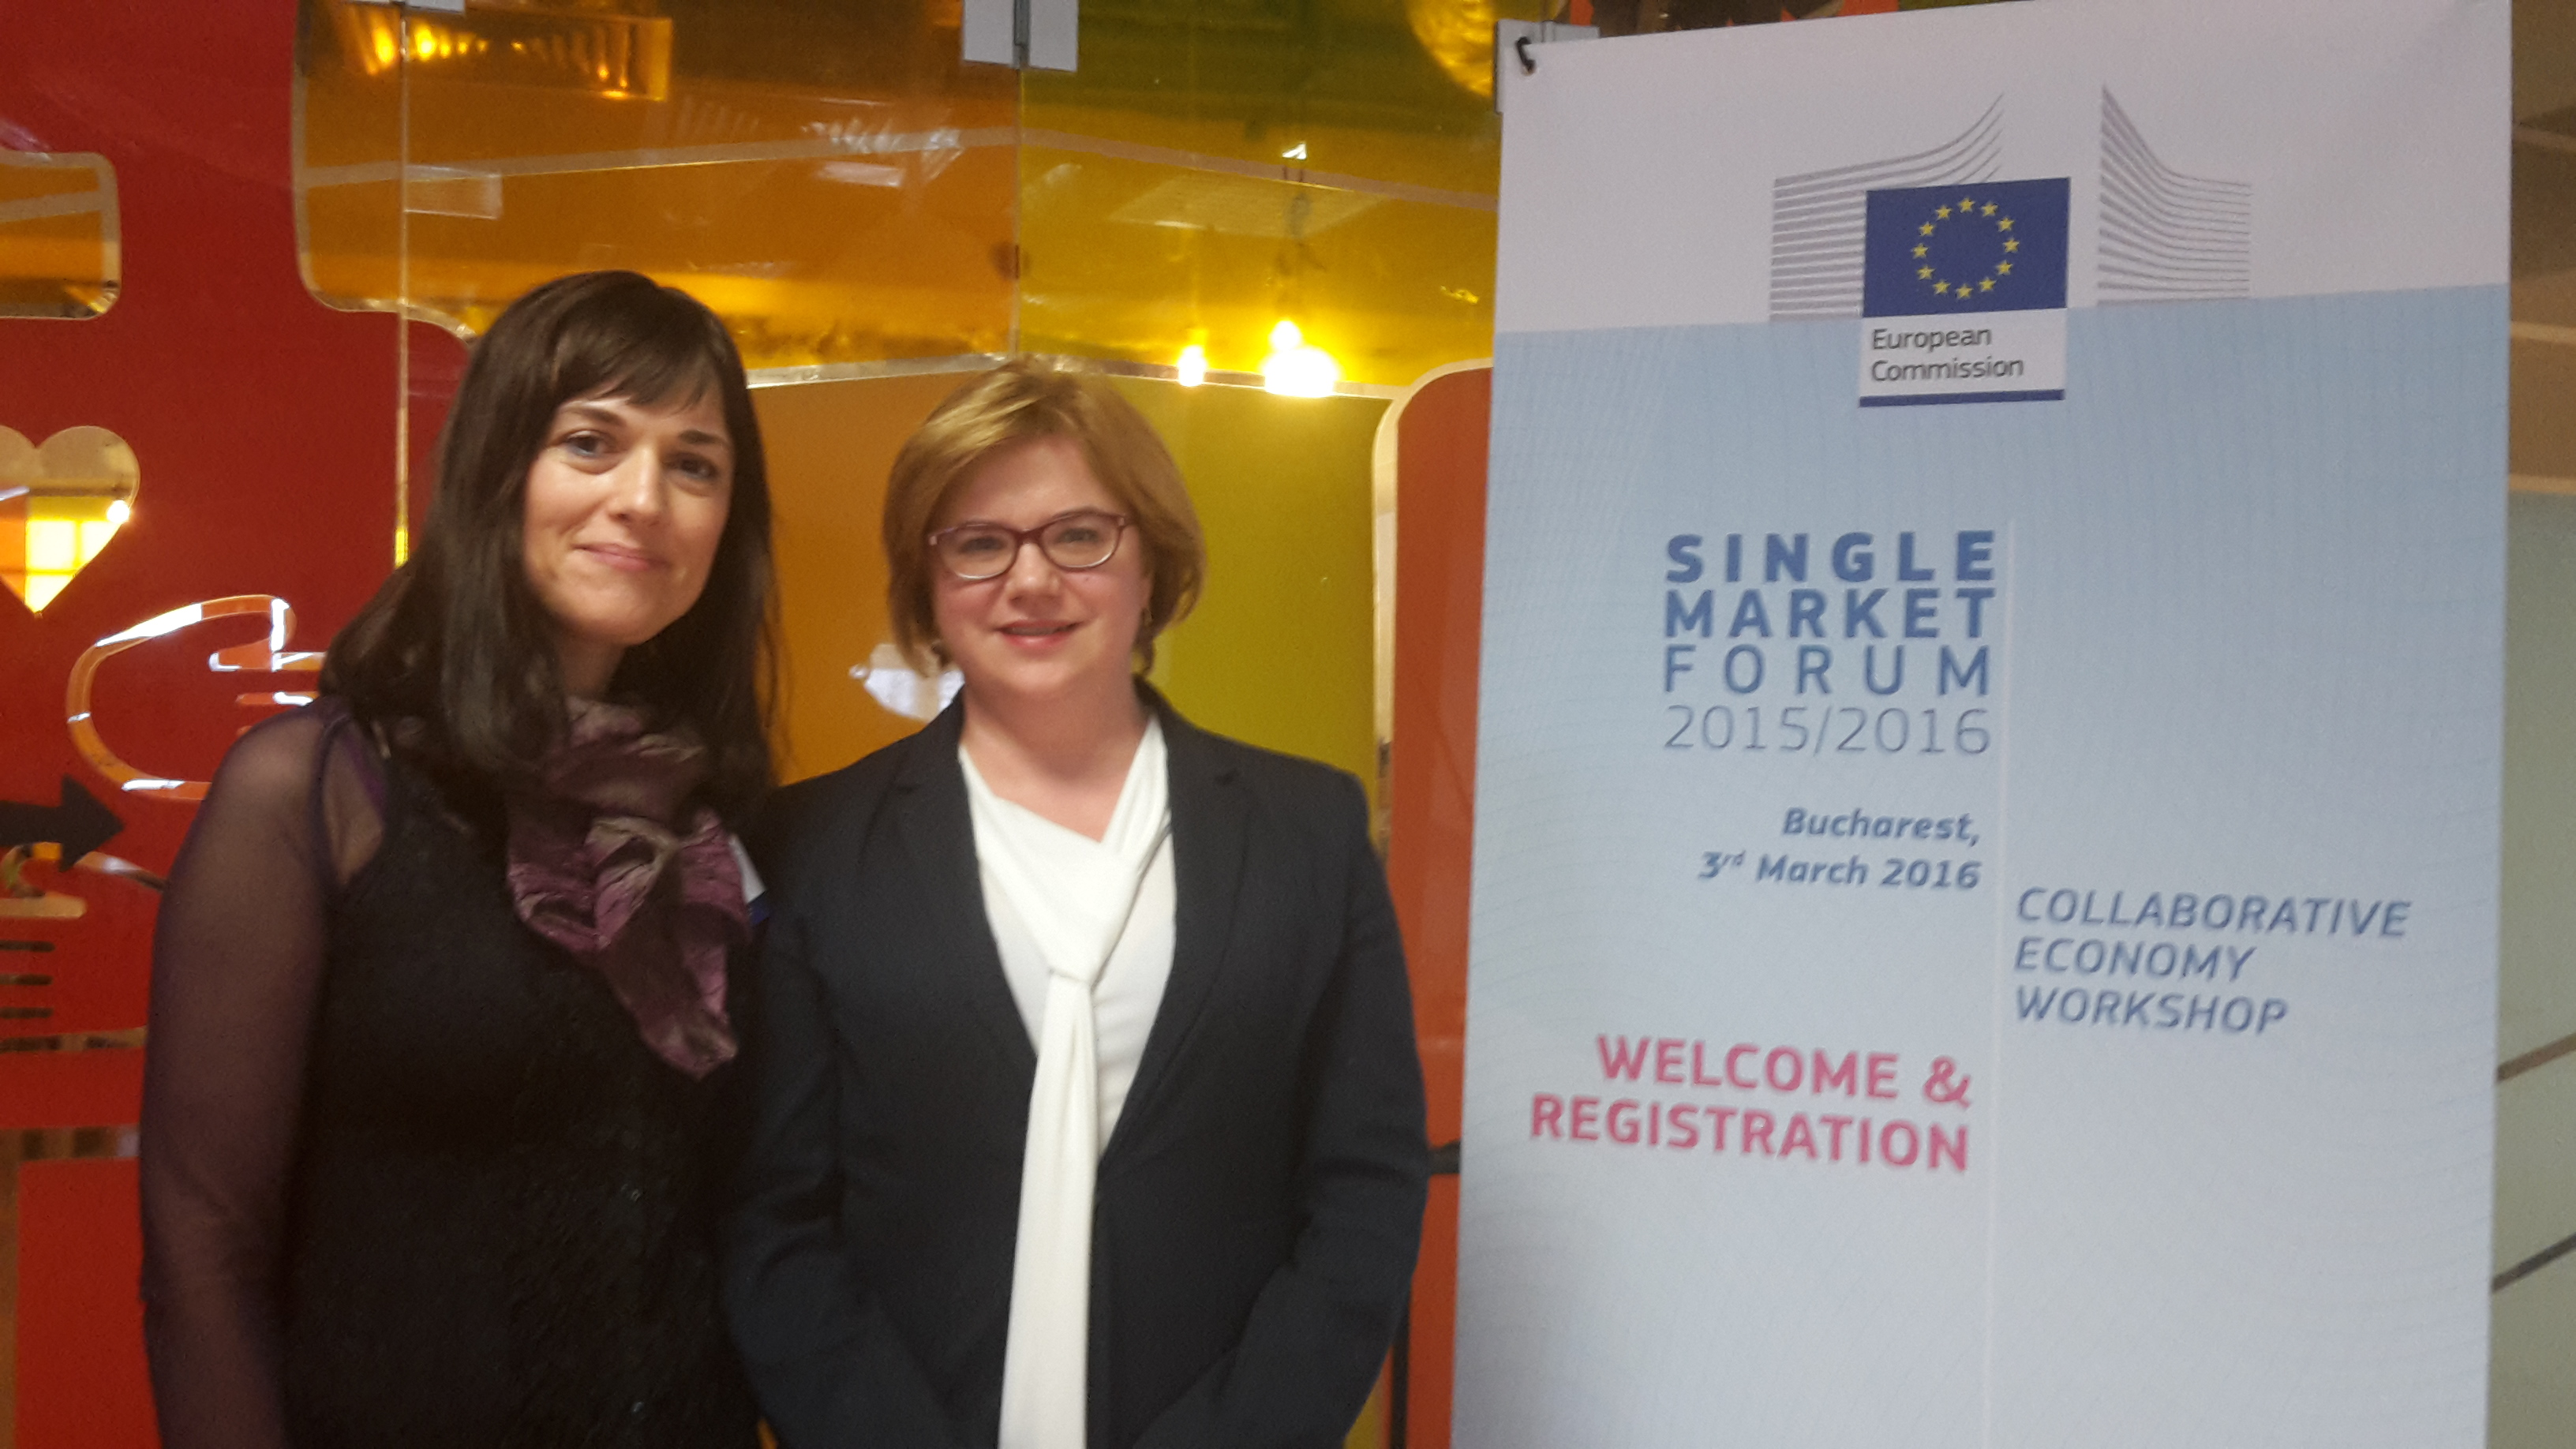 Dana Puia Morel and Alina Bârgăoanu at the Collaborative Economy Workshop organized by the at Bucharest with Romanian and Polish entrepreneurs March 3, 2016